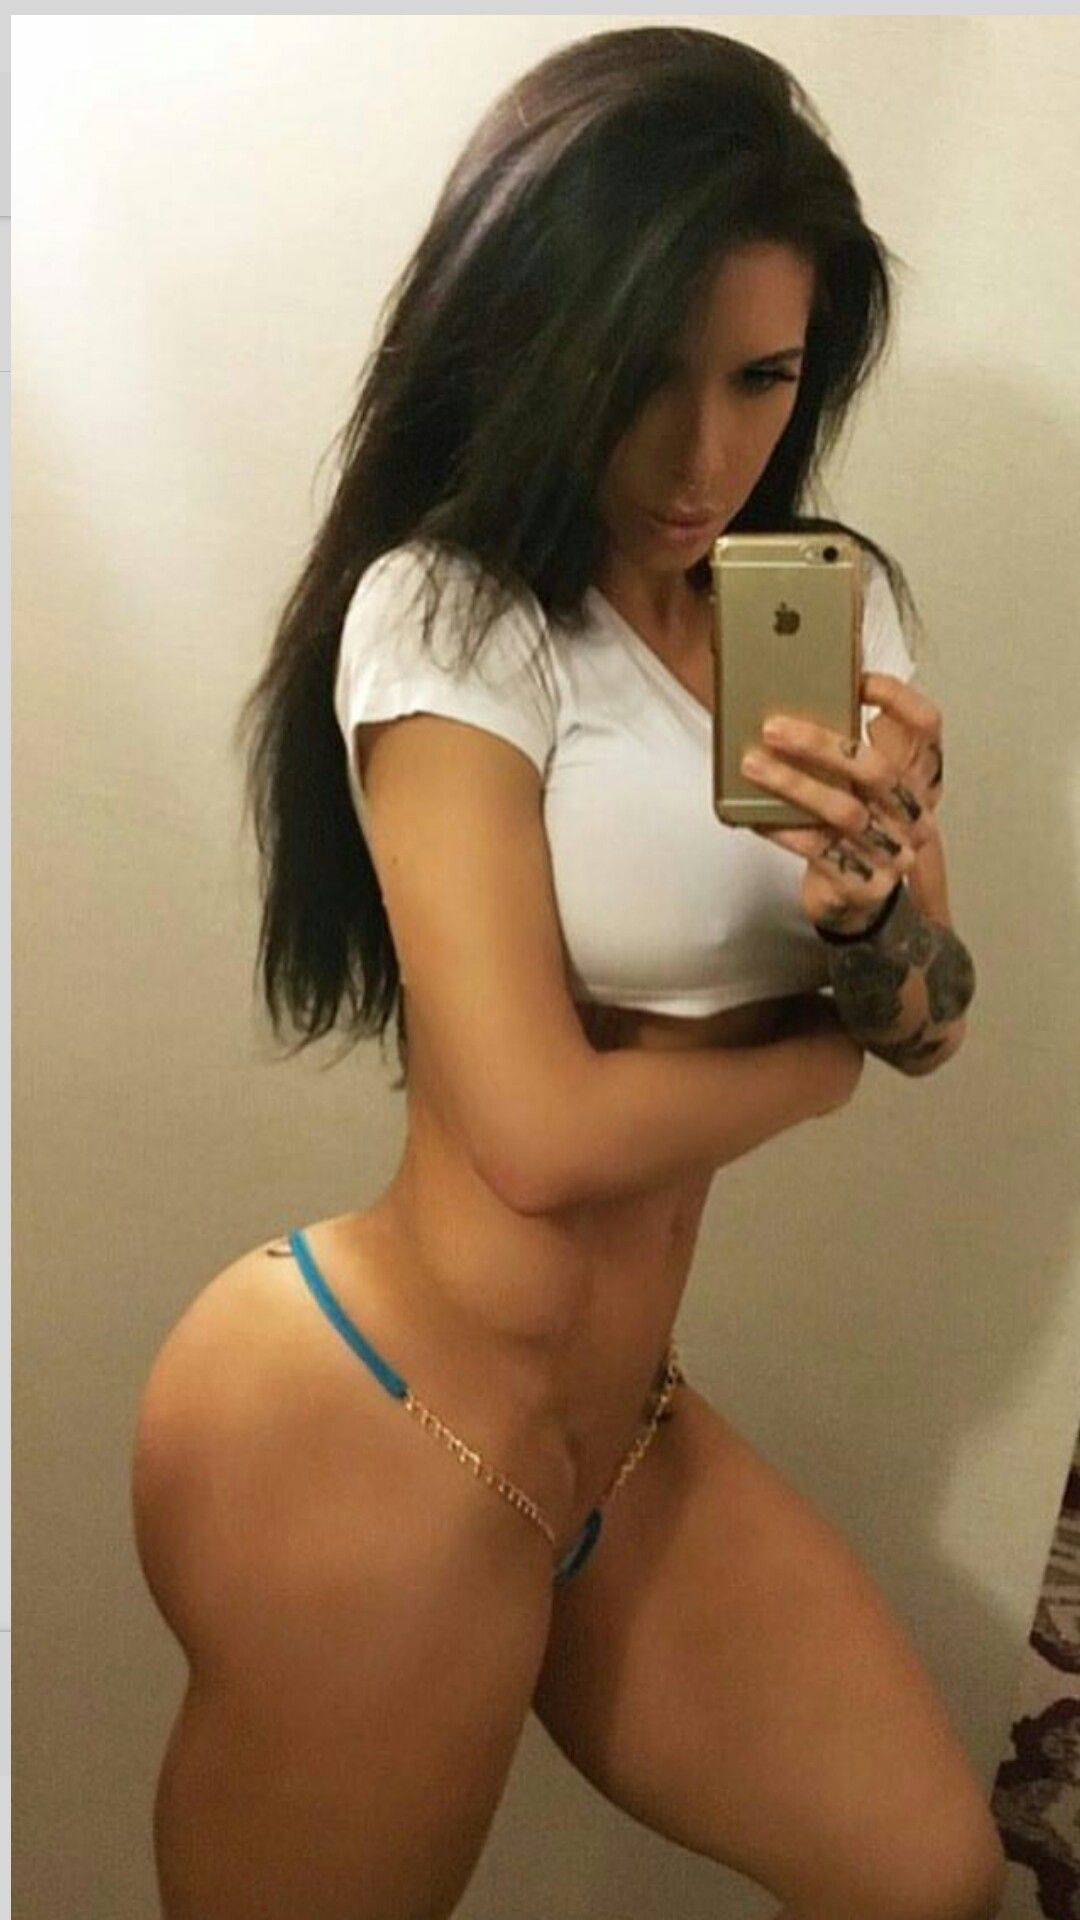 pinrebujito on selfie | pinterest | nice asses, latina and brunettes